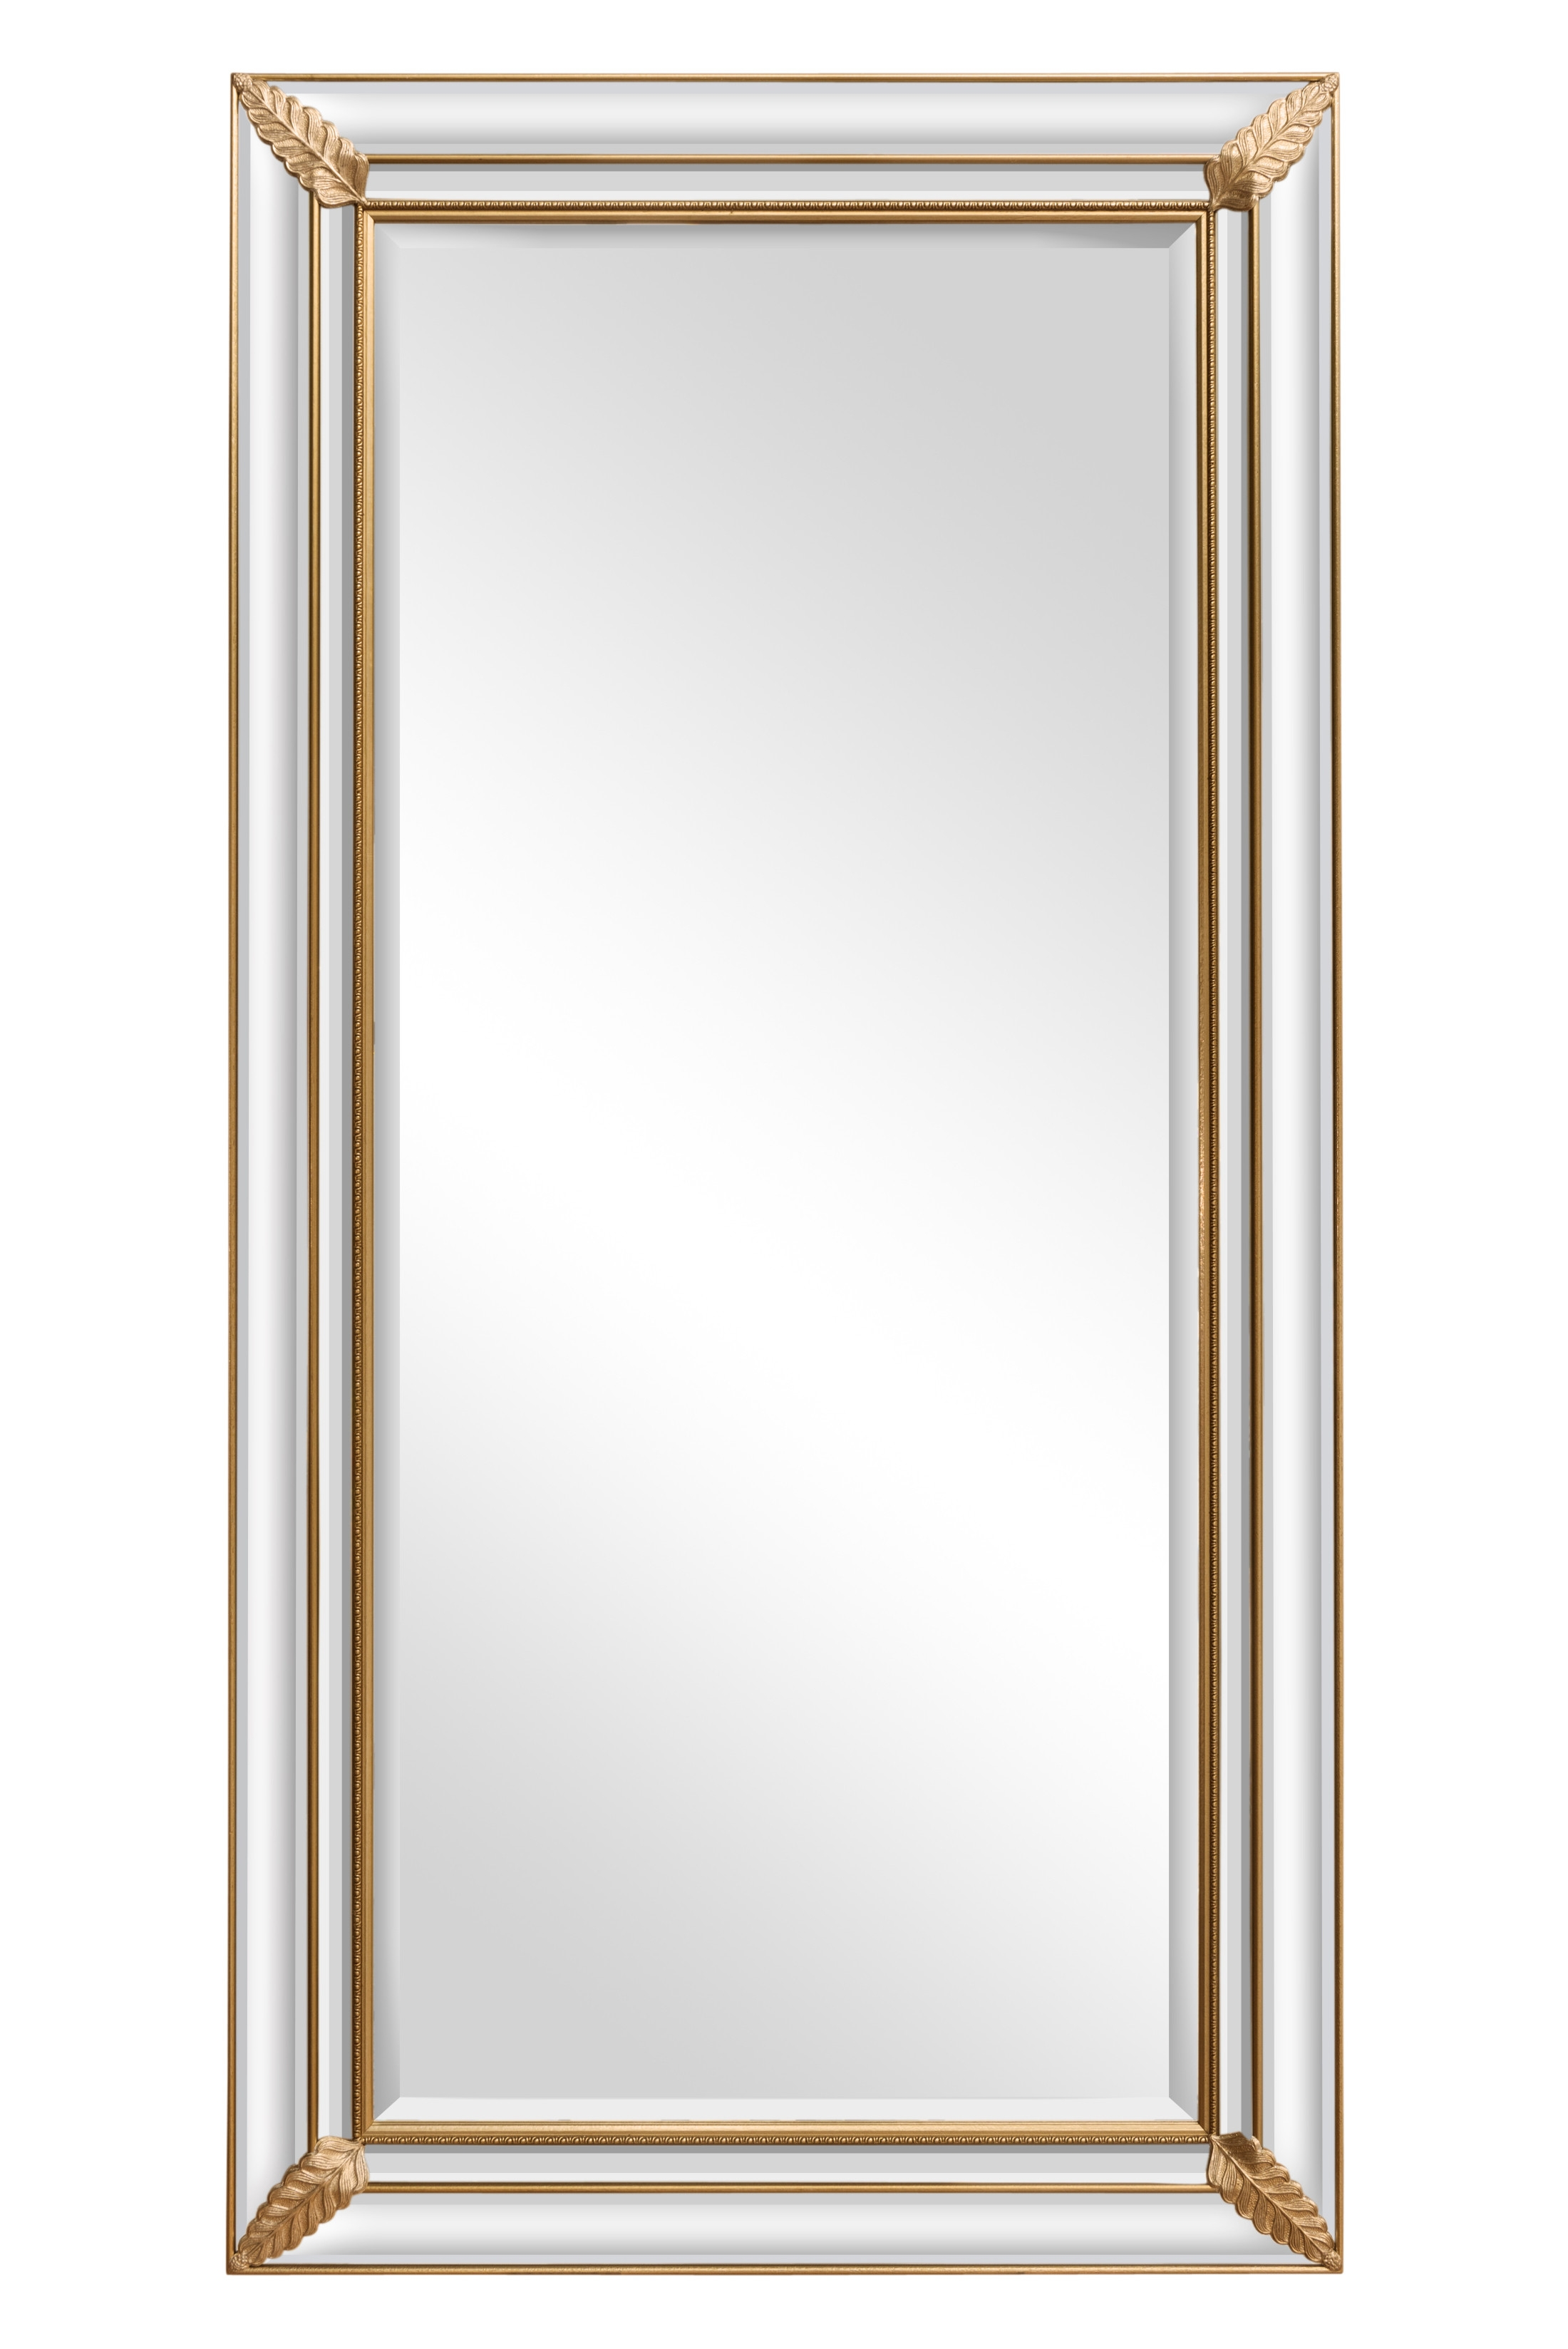 Bedroom Mirrors Mirrors For Sale Panfili Mirrors Interiors Pertaining To Long Mirrors For Sale (Image 5 of 15)